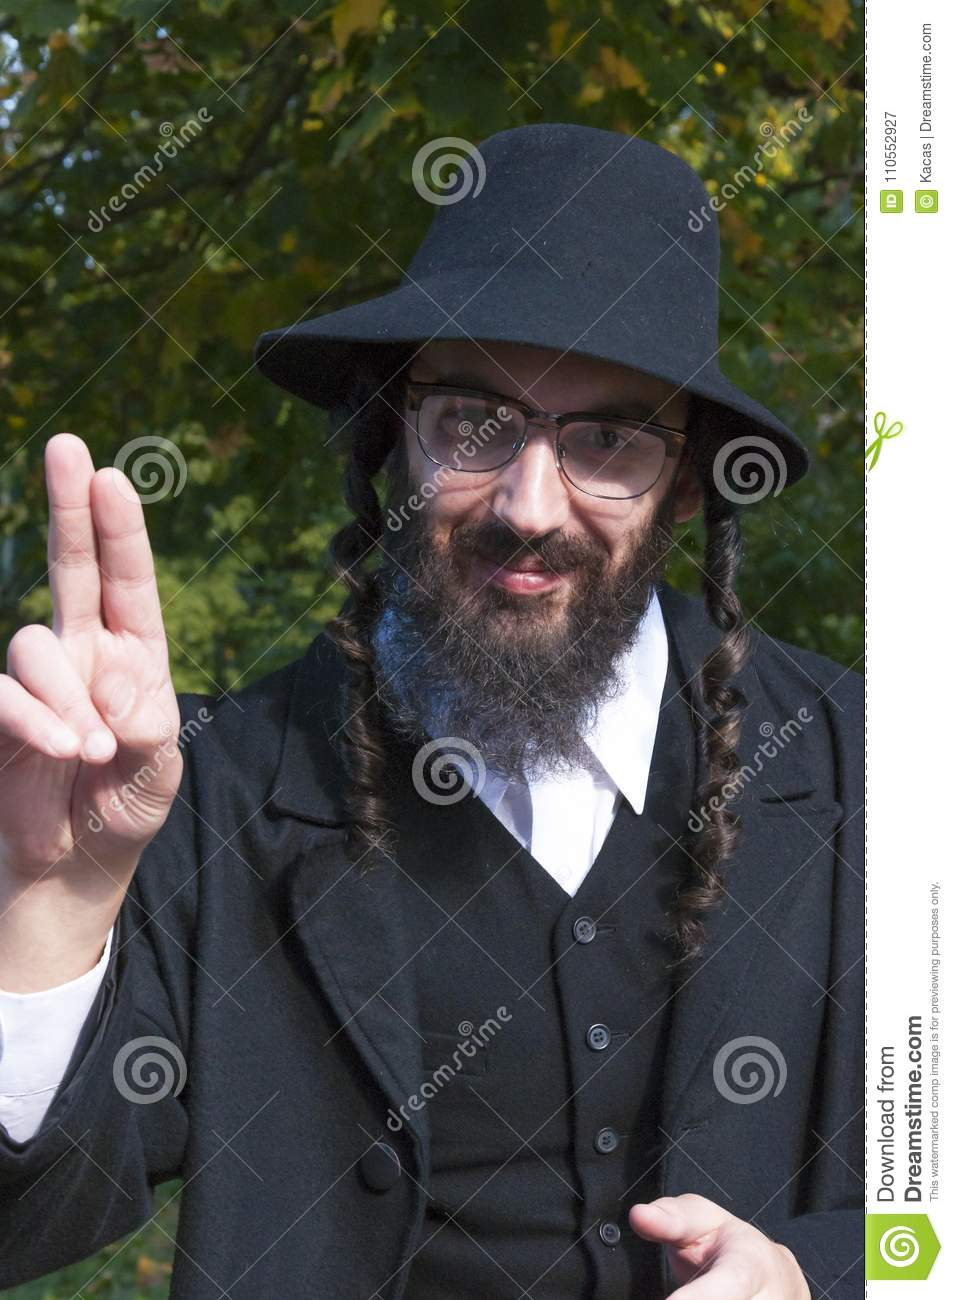 2aad6920565 Sunny outdoor portrait of a young smiling happy fingers blessing  traditional orthodox Jewish man with black beard and hat wearing eyeglasses